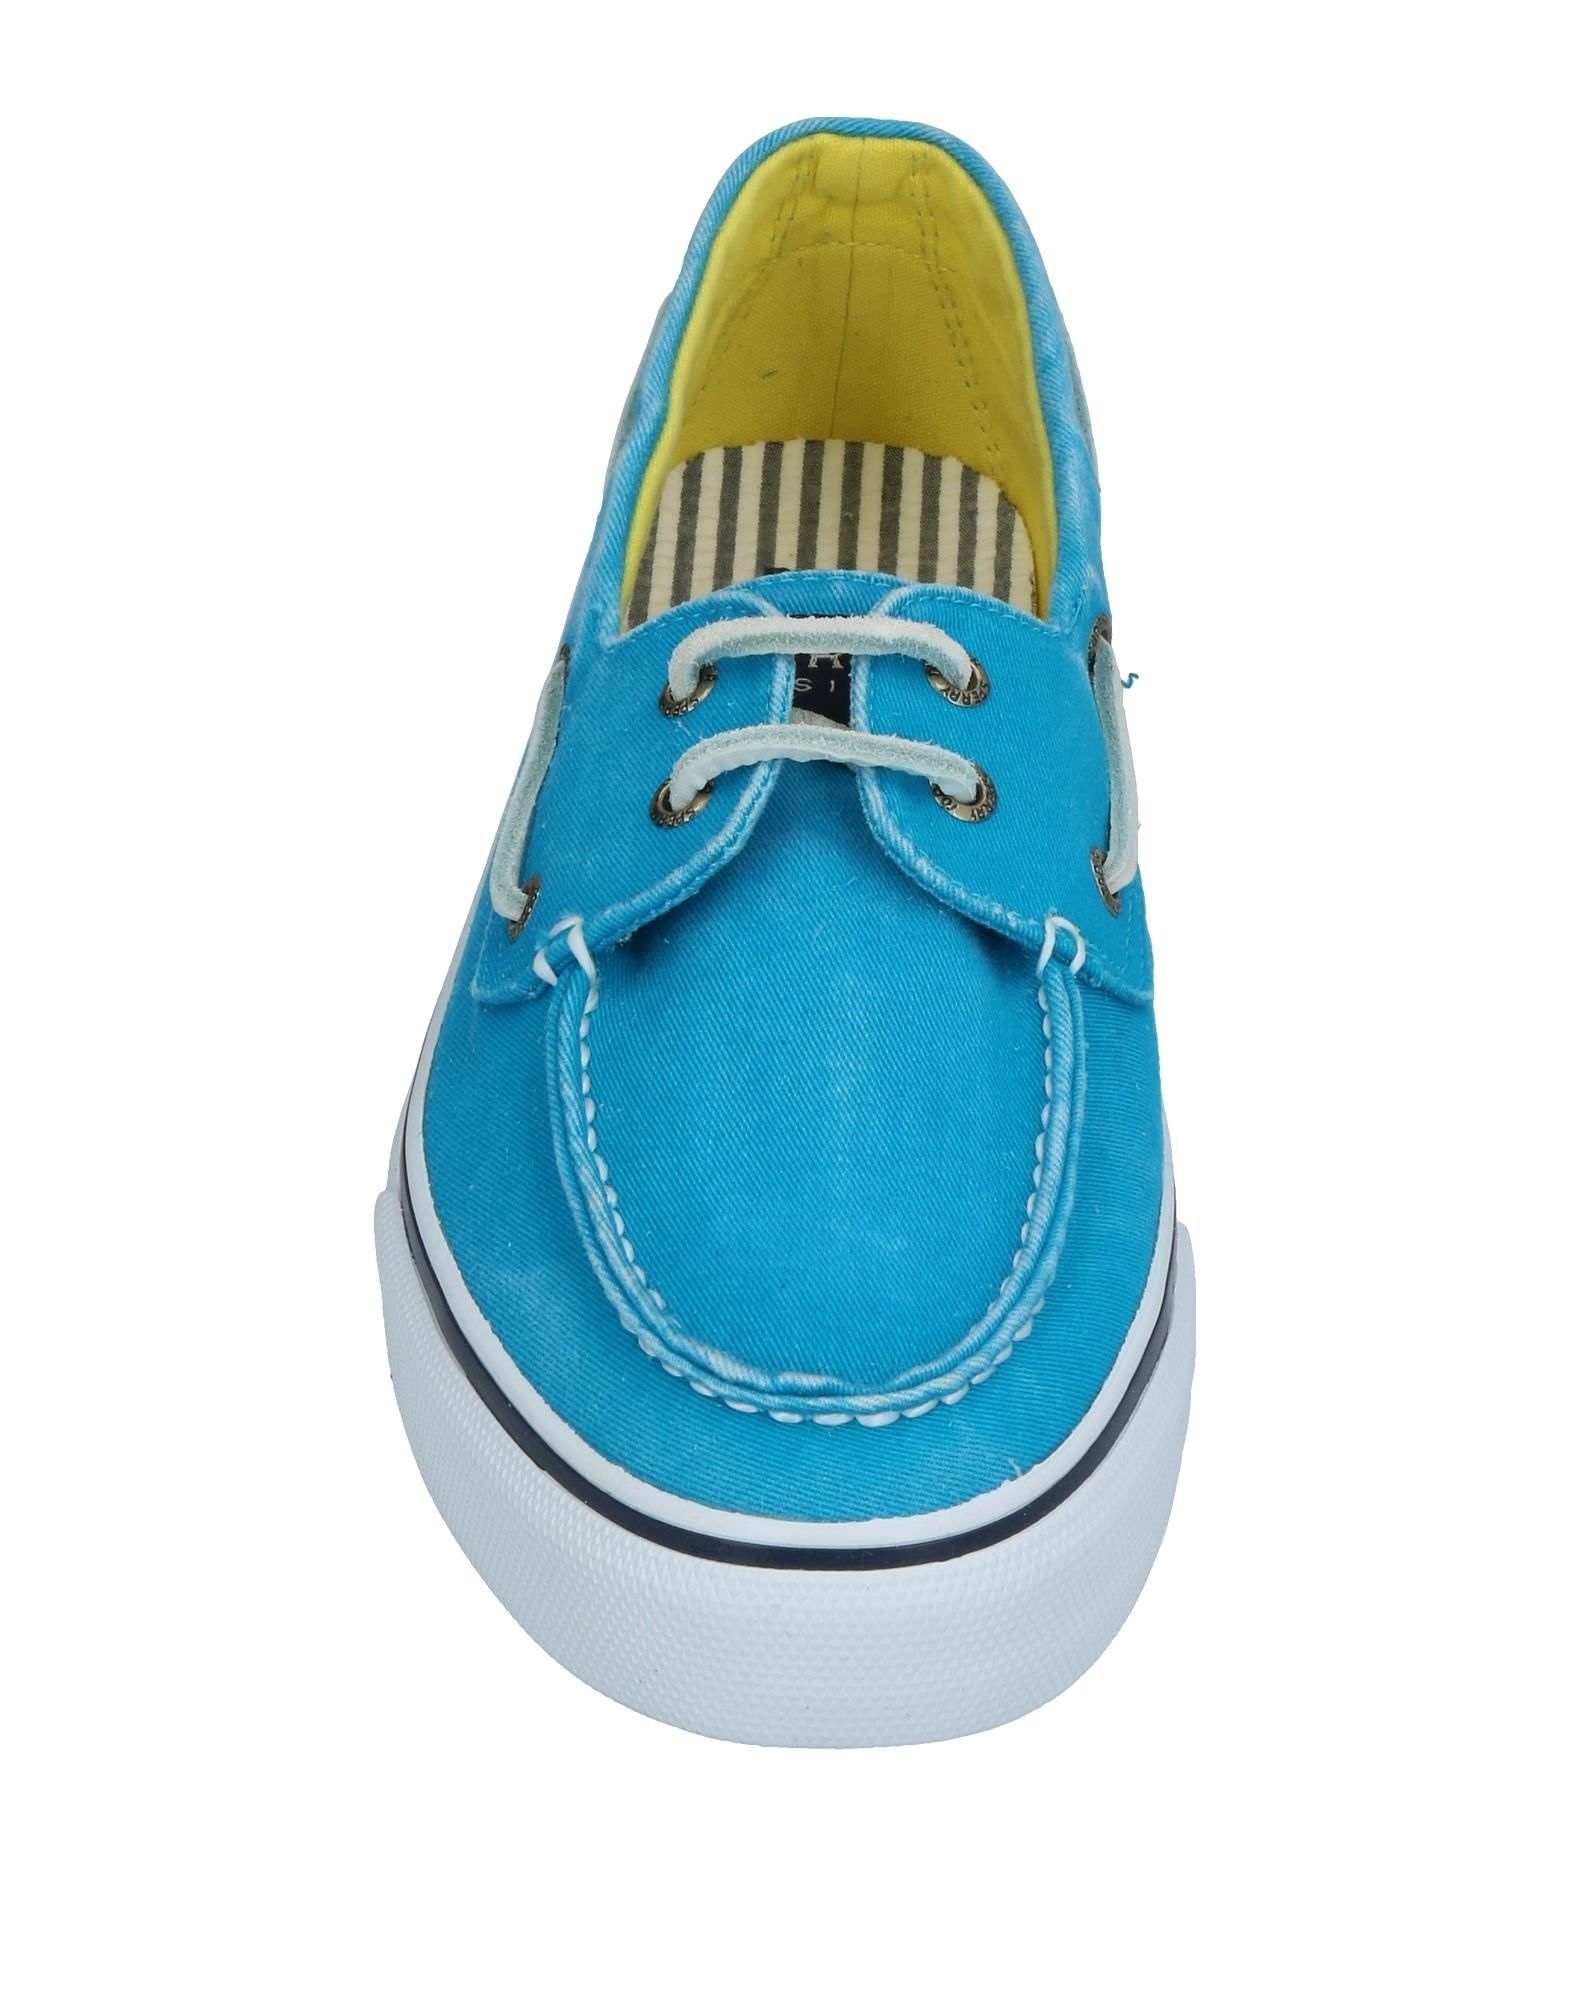 Mocassins Sperry Homme - Mocassins Sperry sur